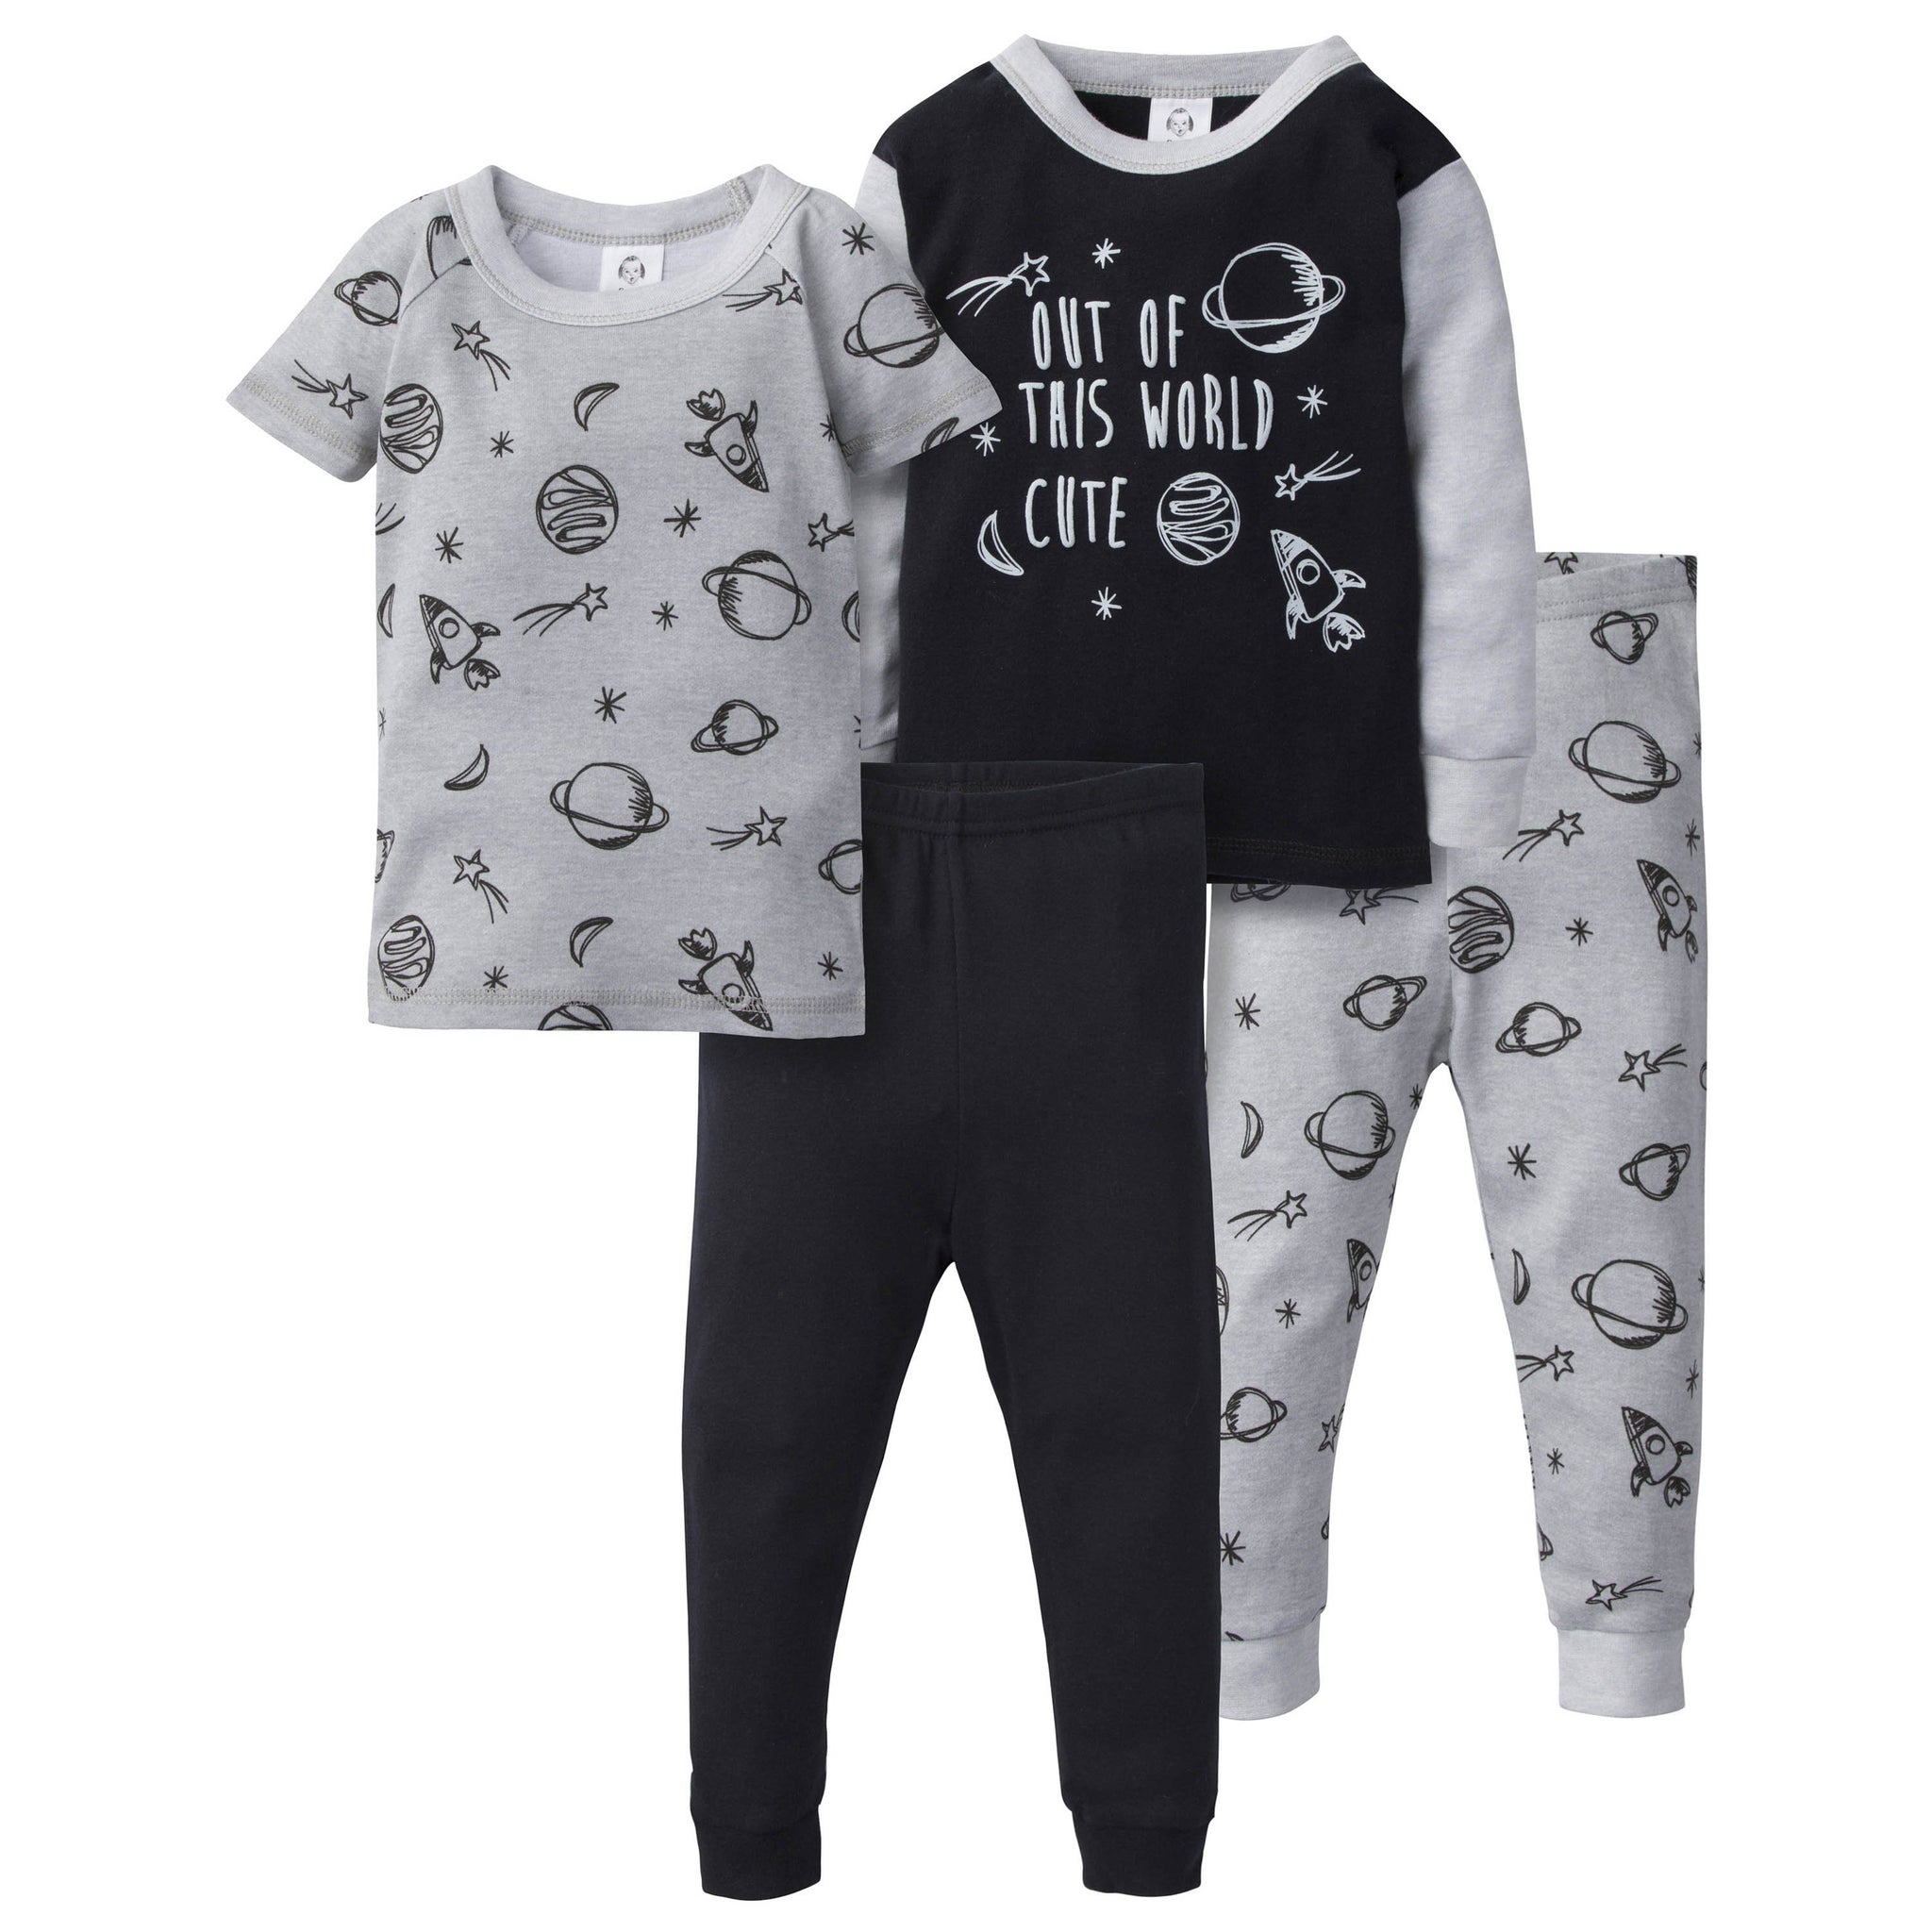 4-Piece Boys Cotton Pajamas - Out Of This World